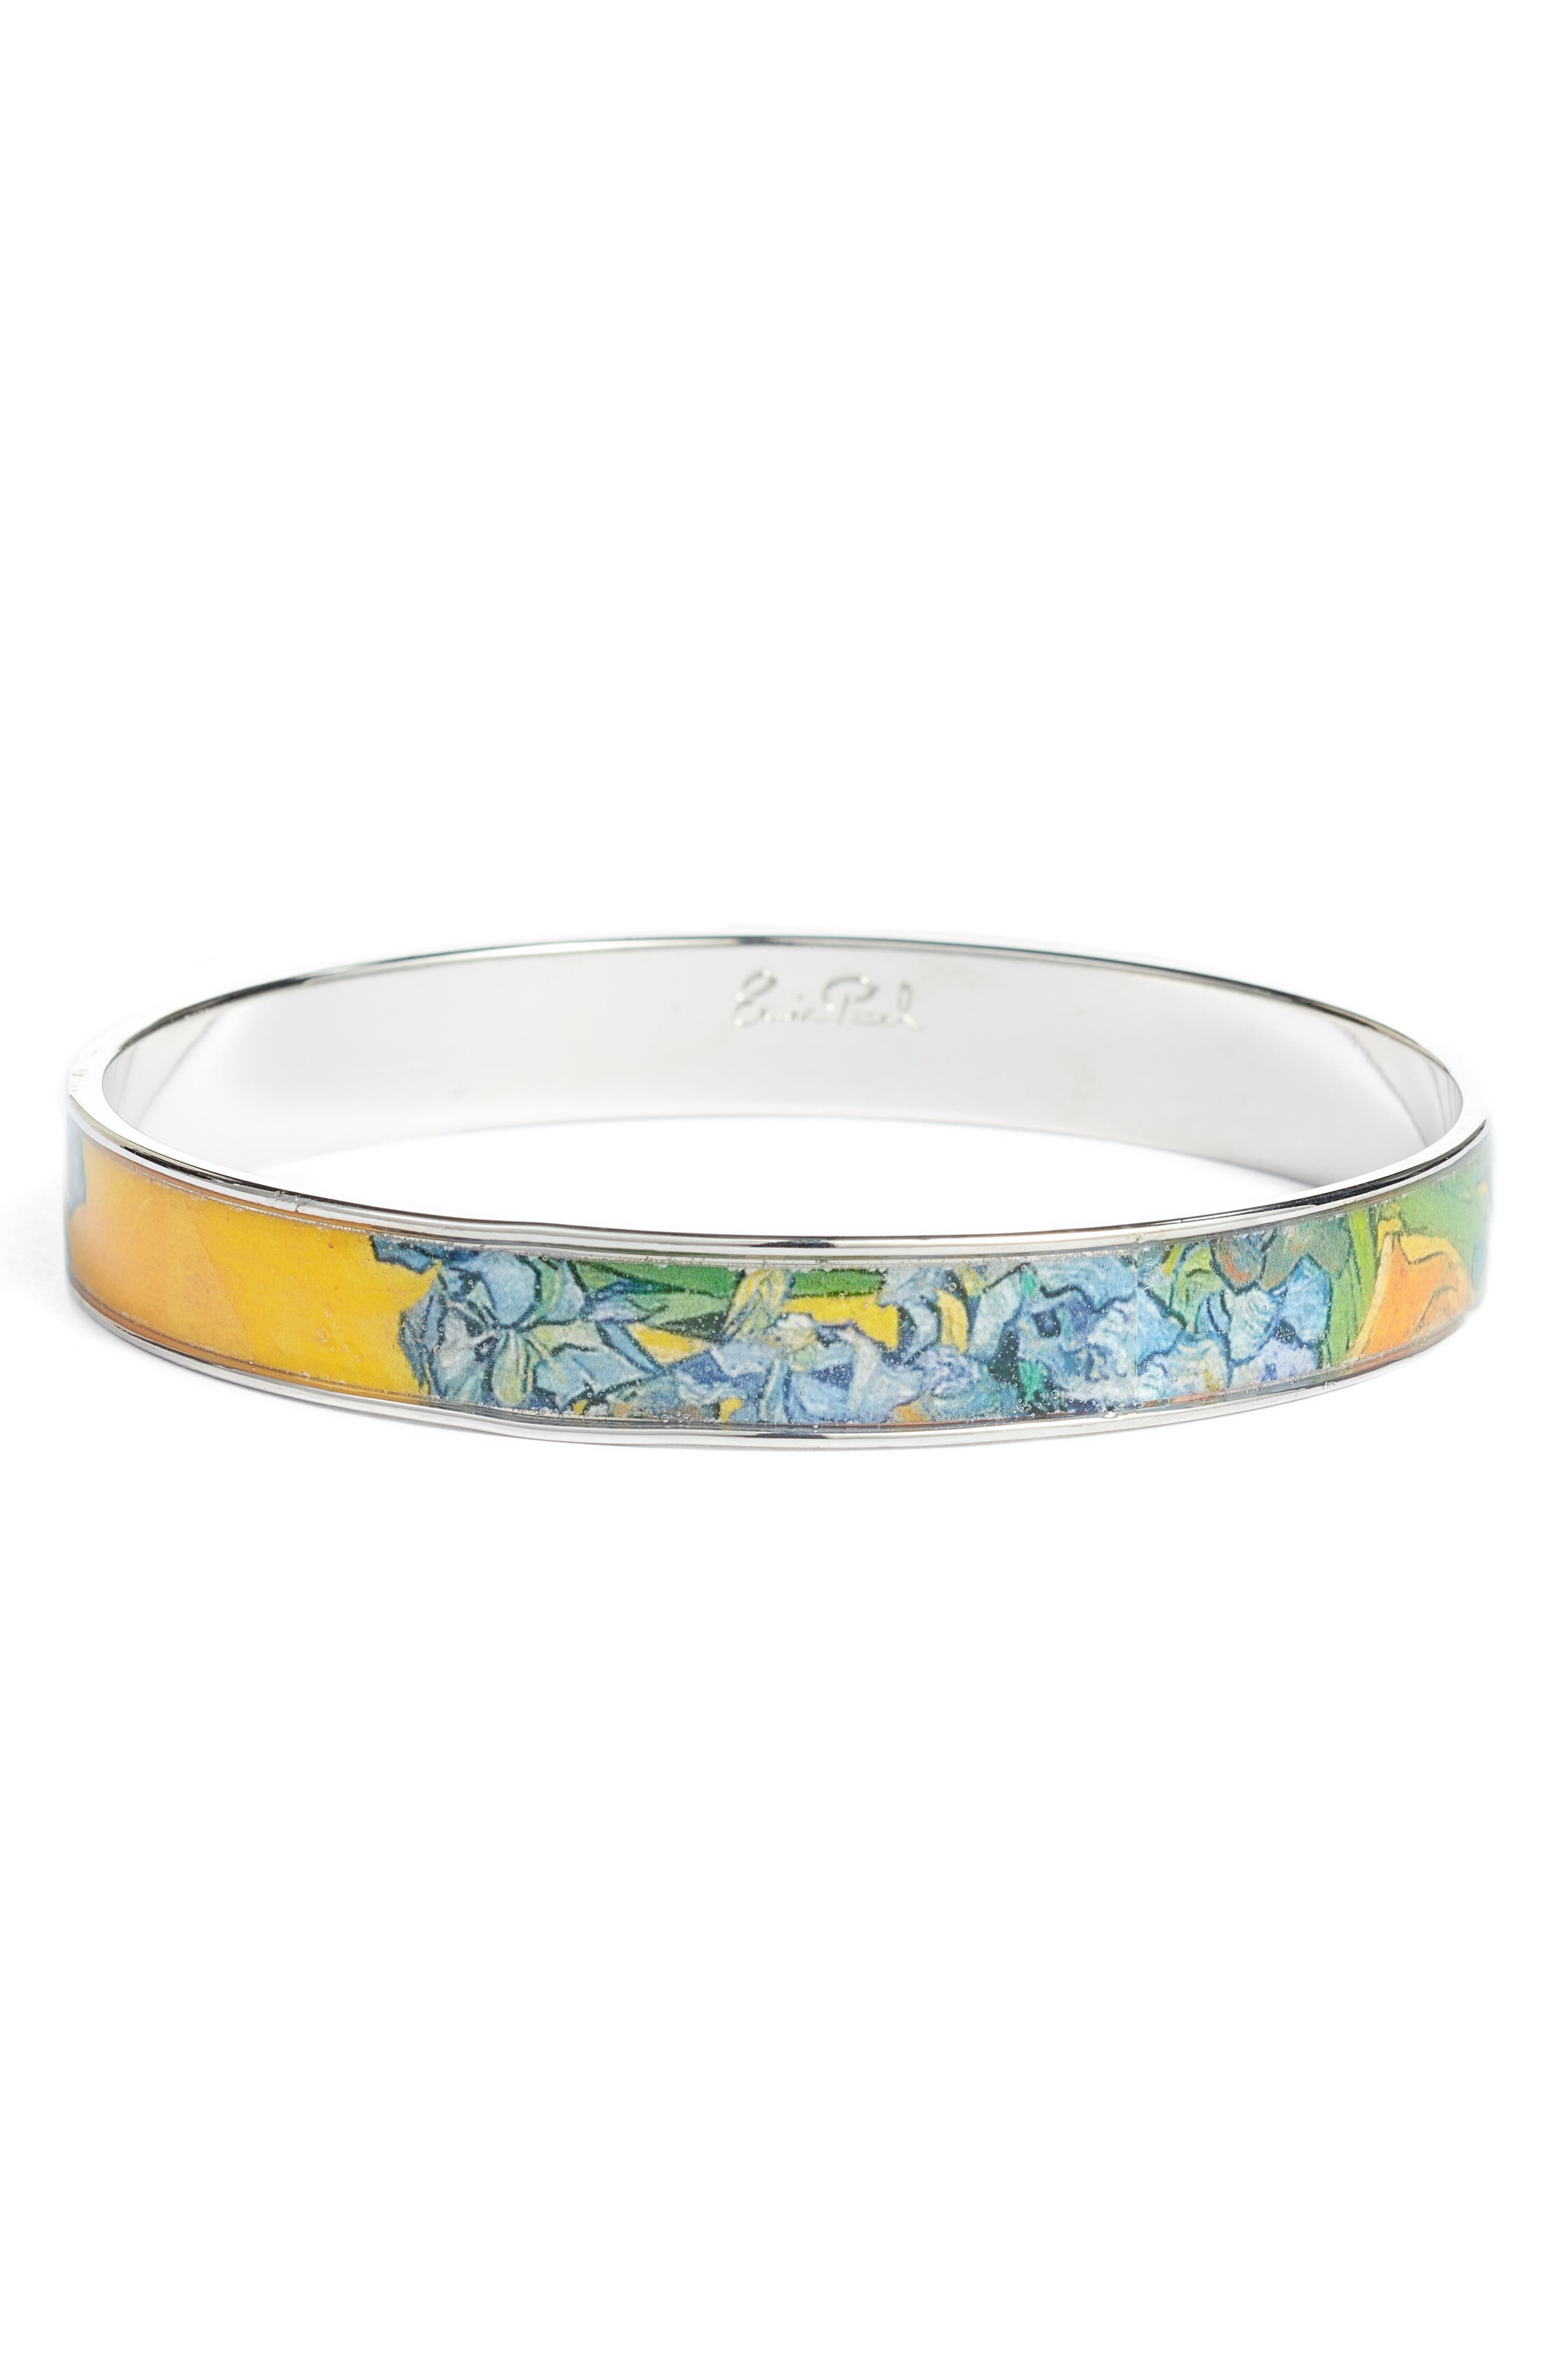 Irises Medium Bangle Bracelet,                         Main,                         color, YELLOW/ SILVER